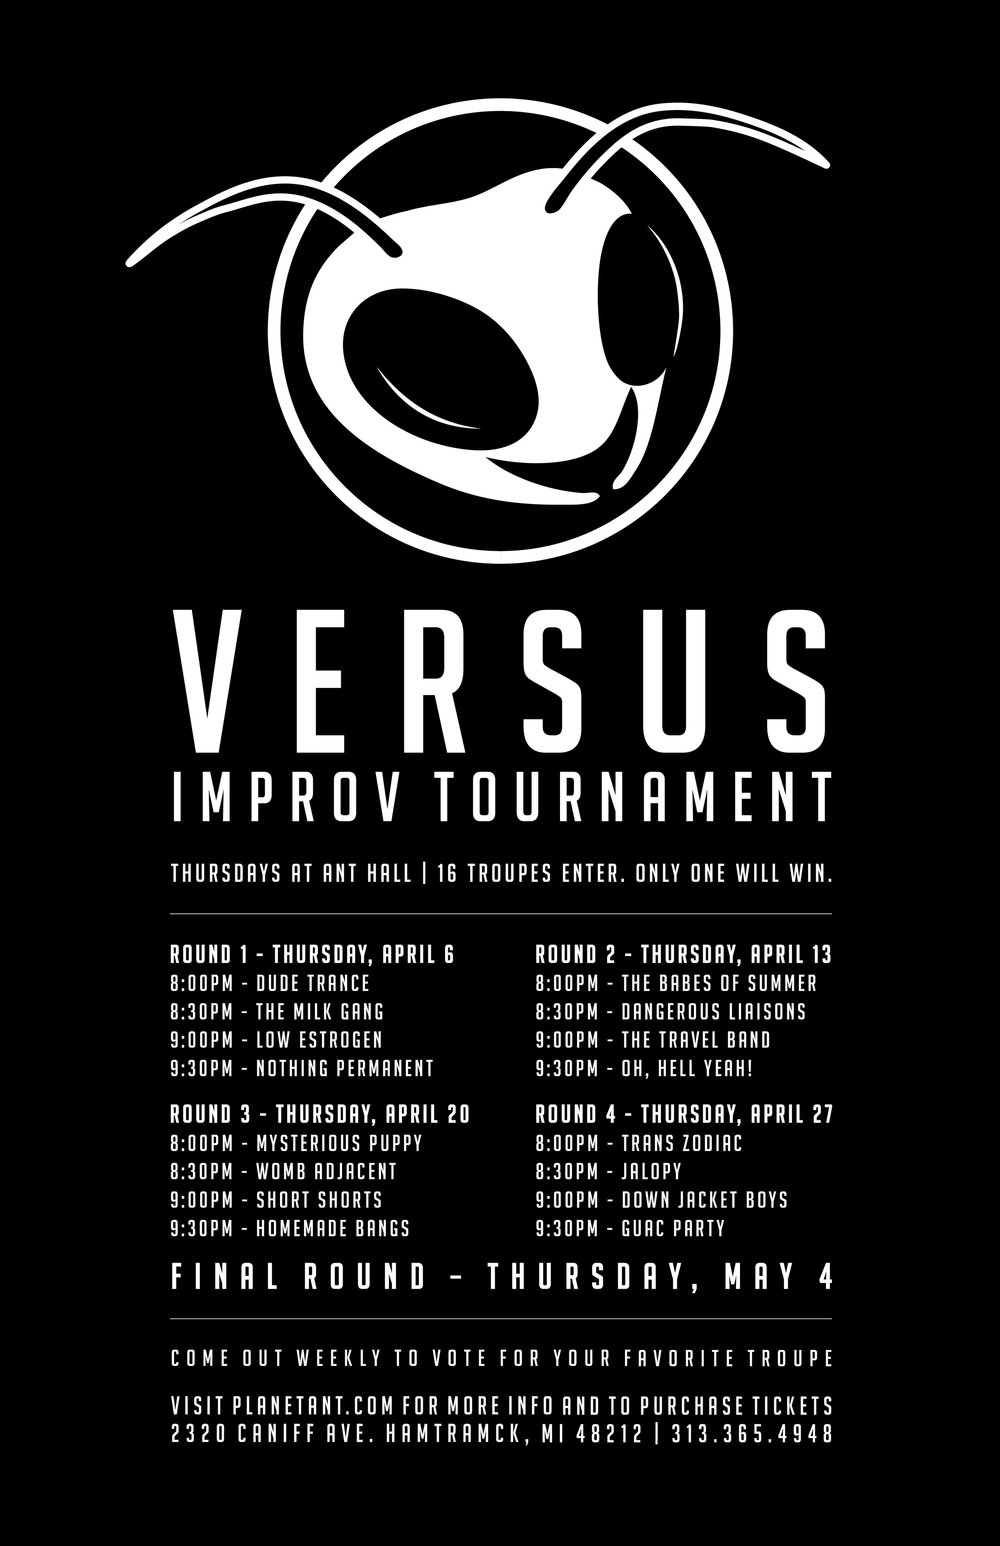 Versus Improv Tournament Poster